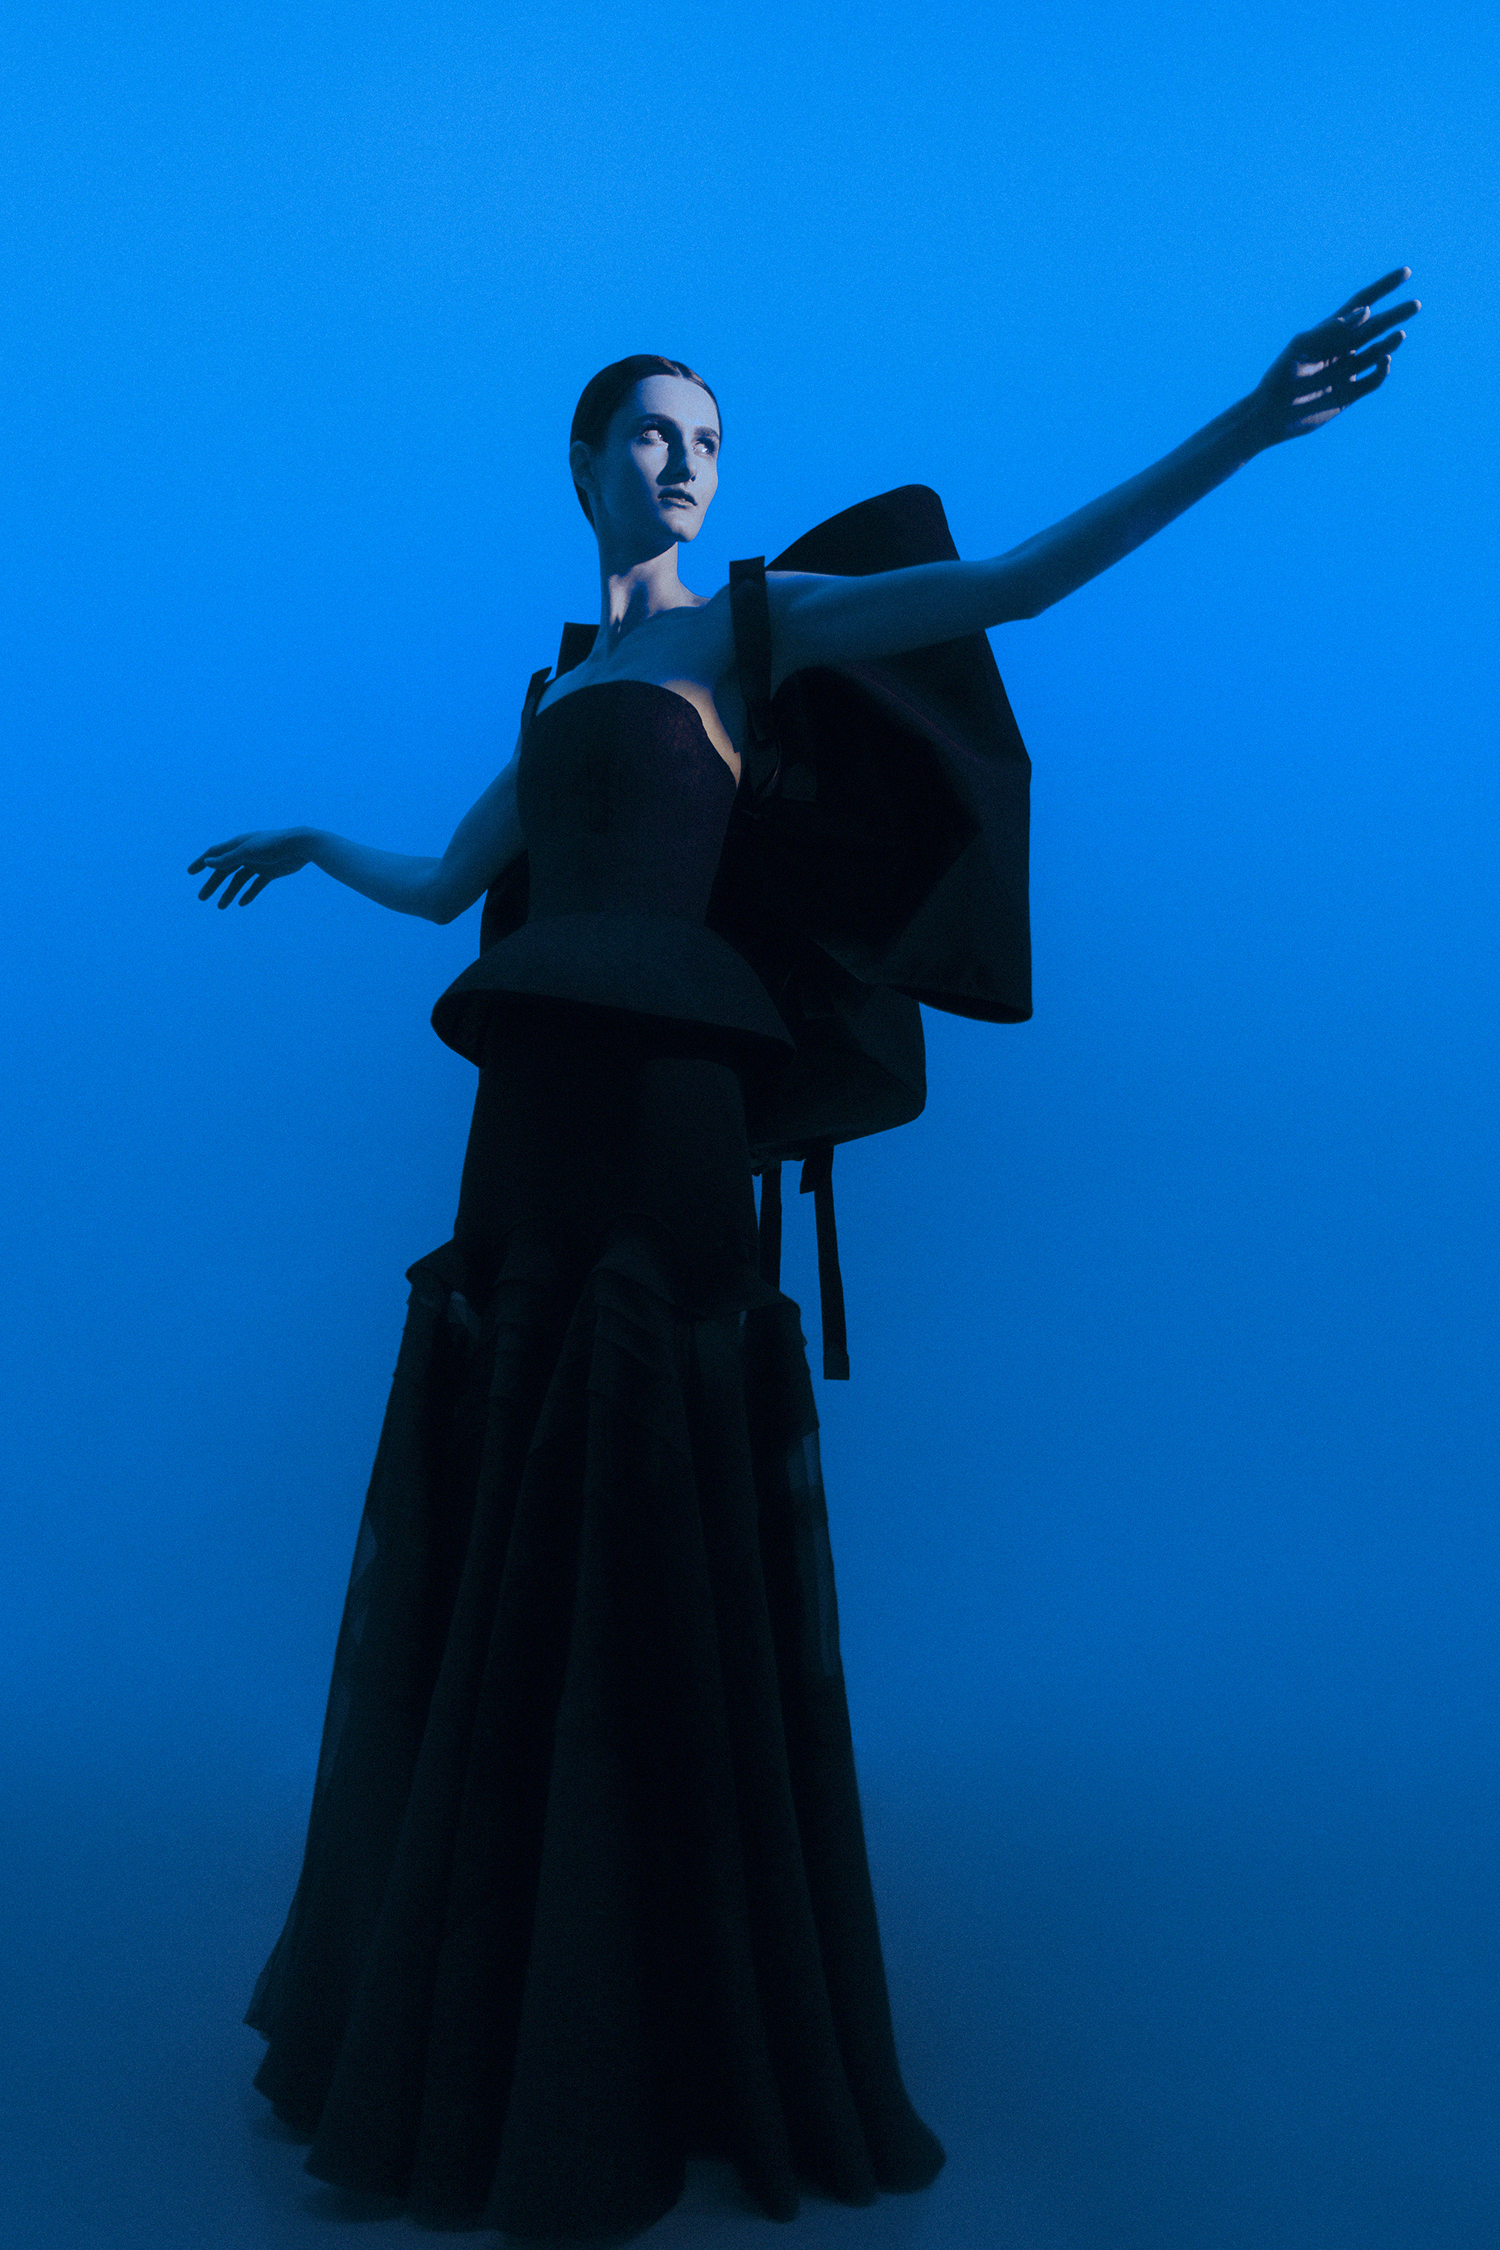 18 - Givenchy Haute Couture - Neil Krug.jpg